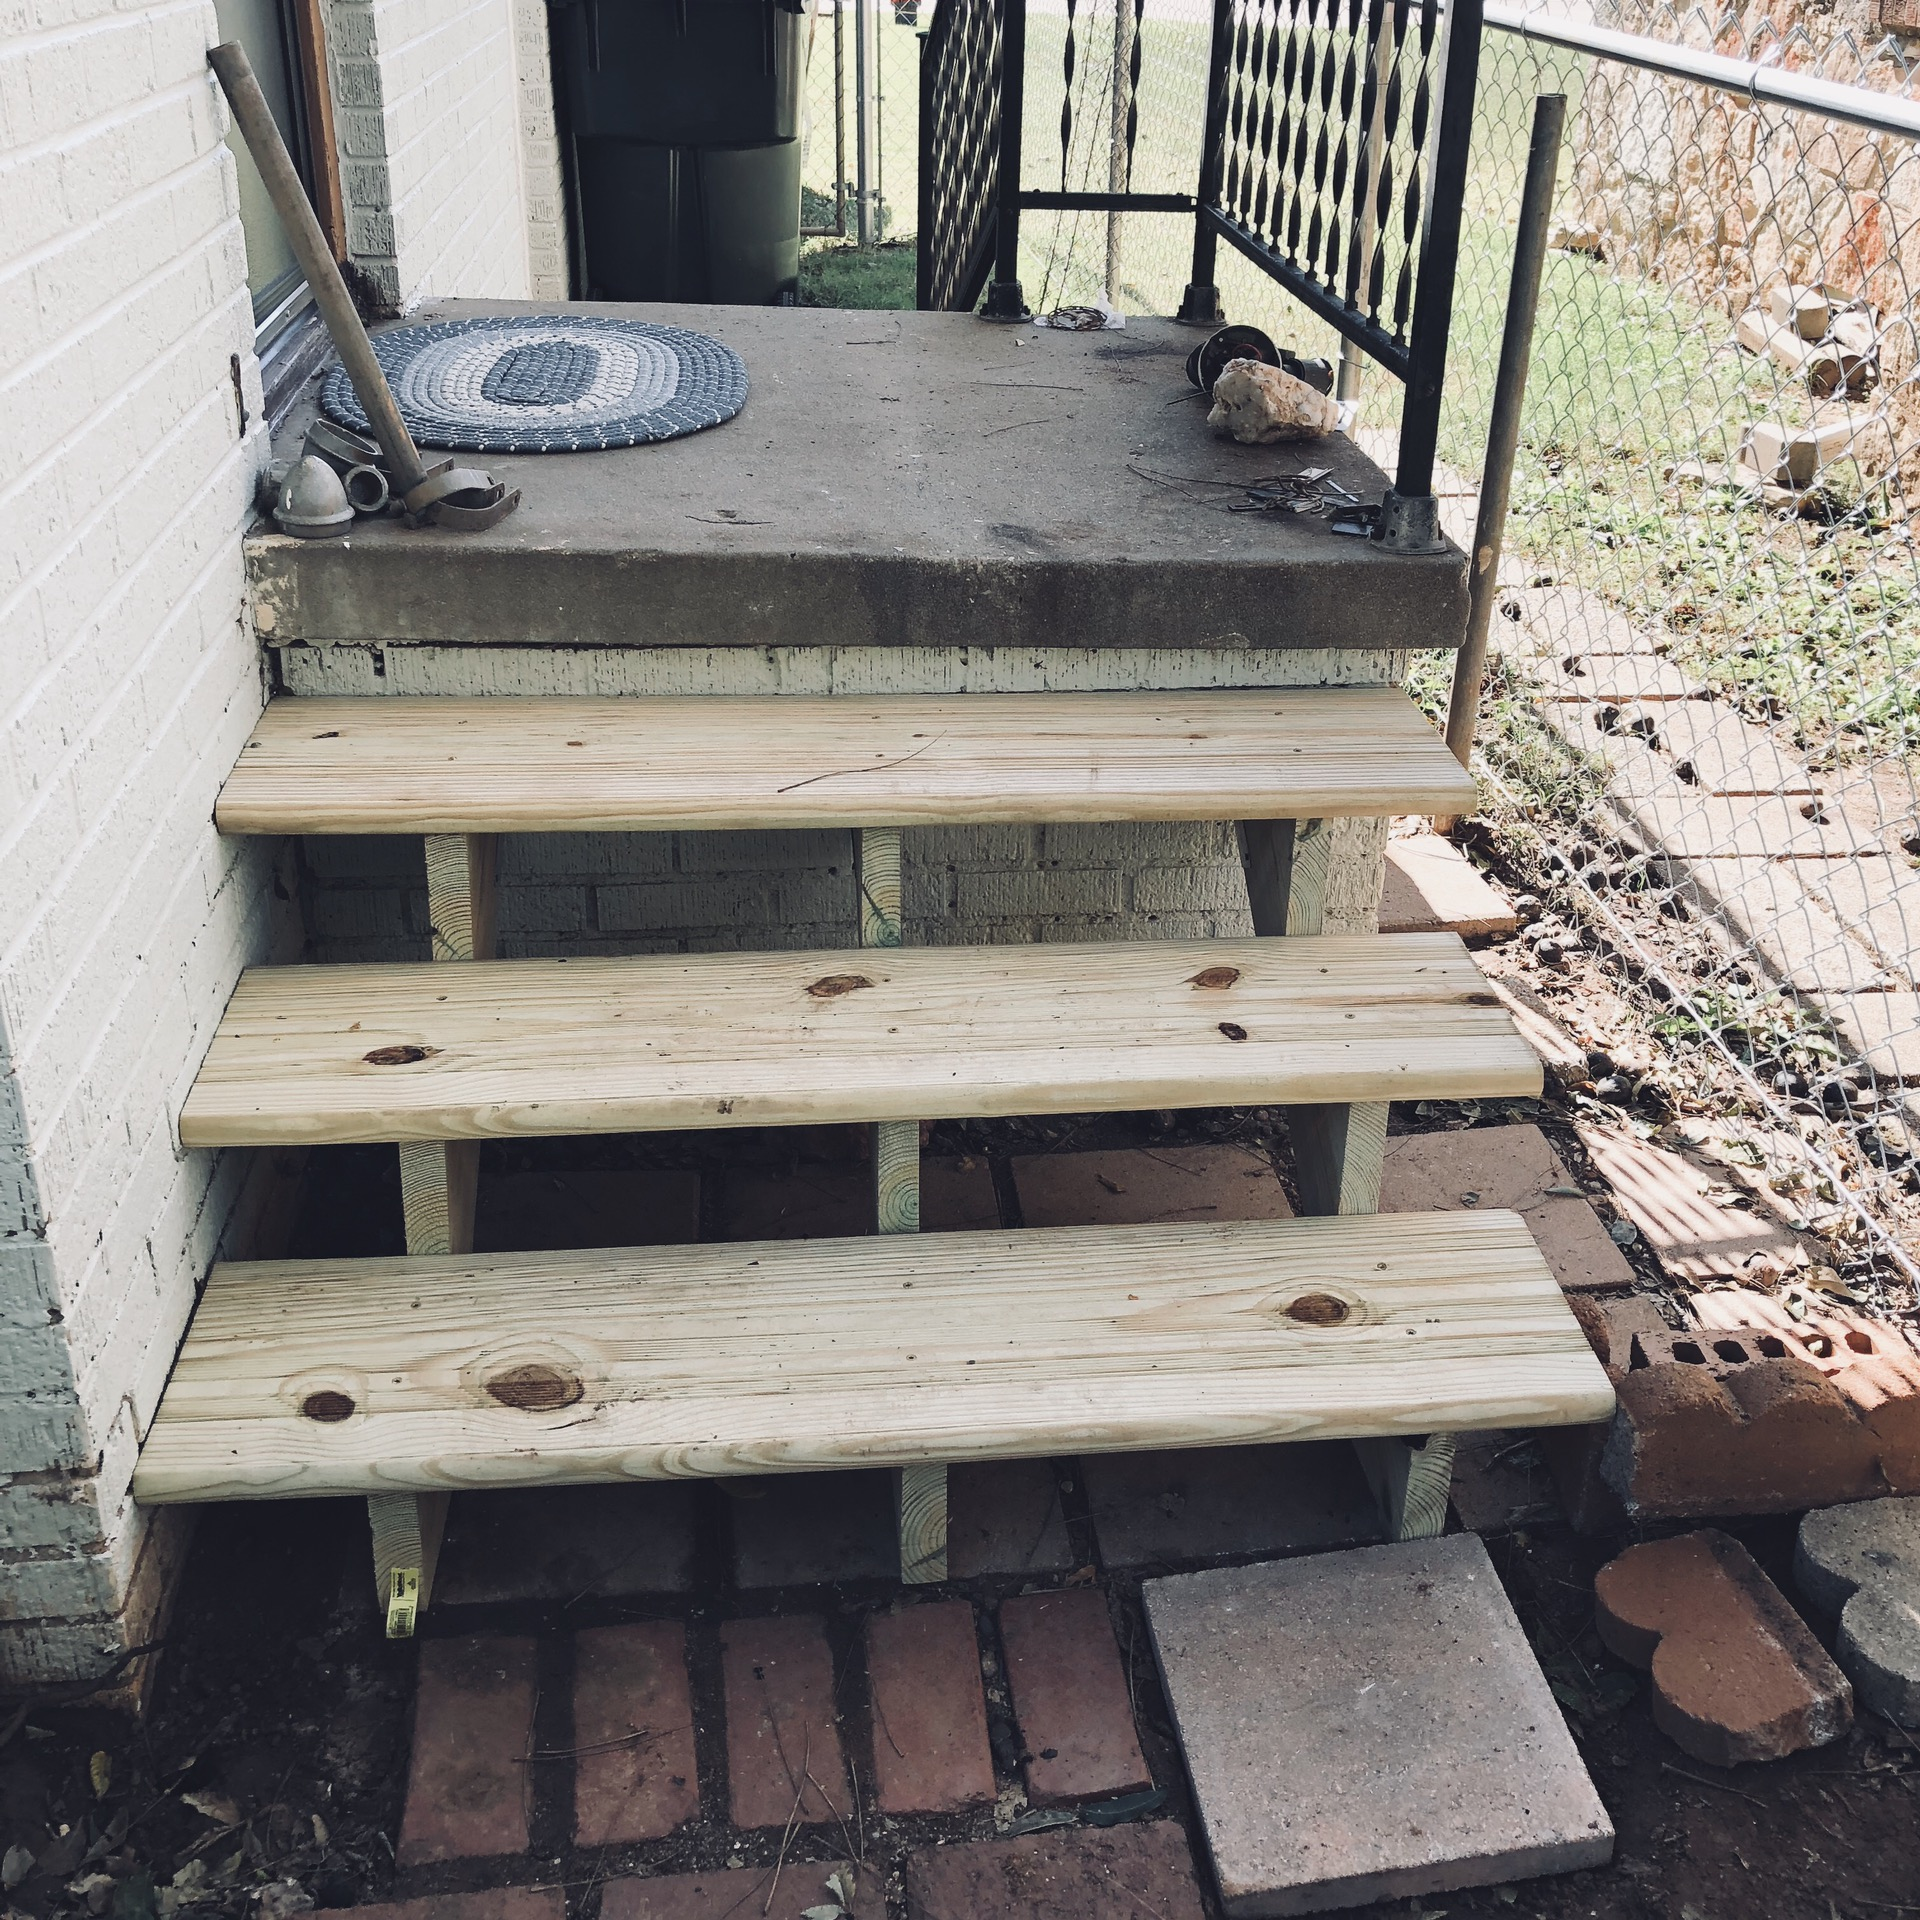 I Bought Everything I Needed For This From Home Depot. The Stair Stringers  Were Pre Made So I Just Bought Those And The Stair Treads.